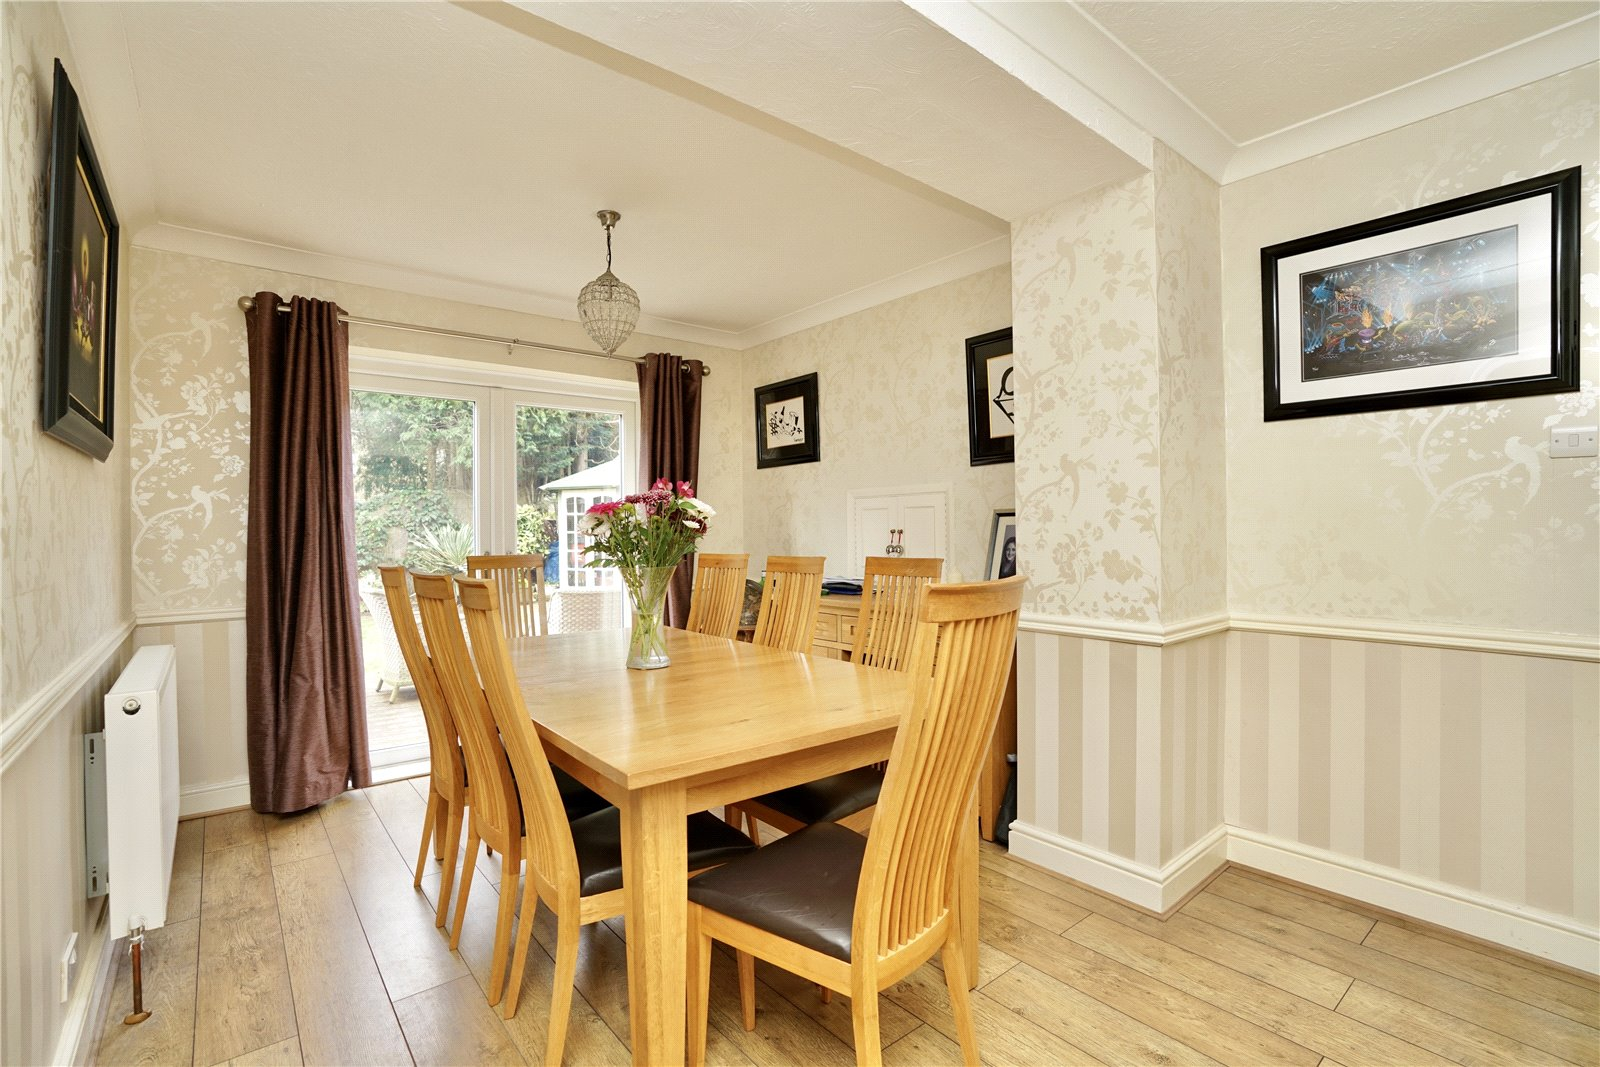 3 bed house for sale in Barley Road, Eaton Socon 3